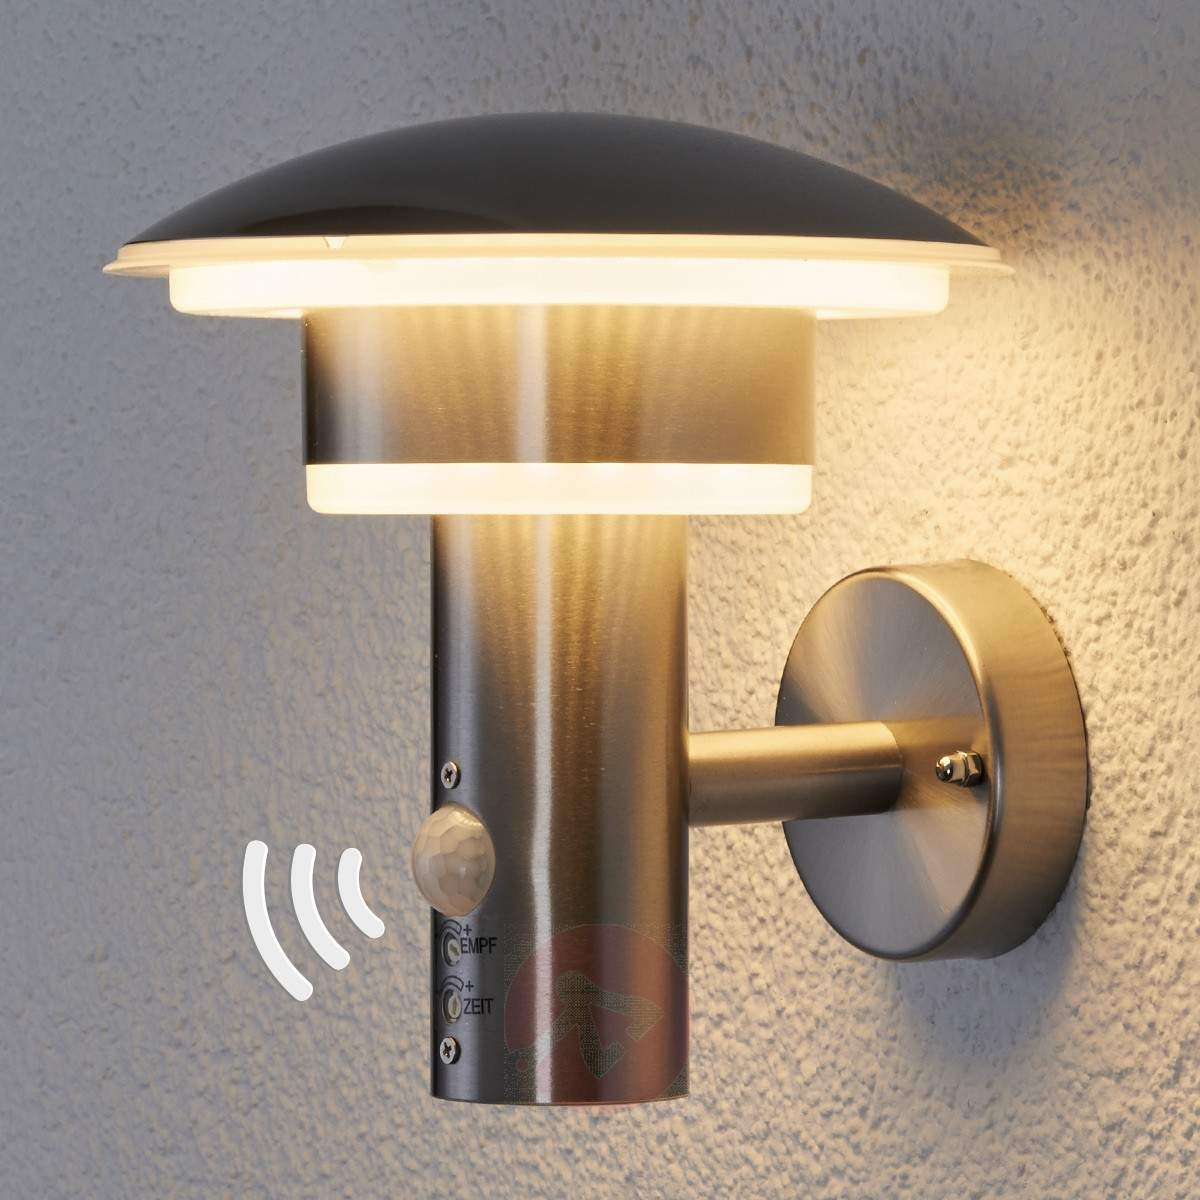 Popular Photo of Outdoor Pir Wall Lights